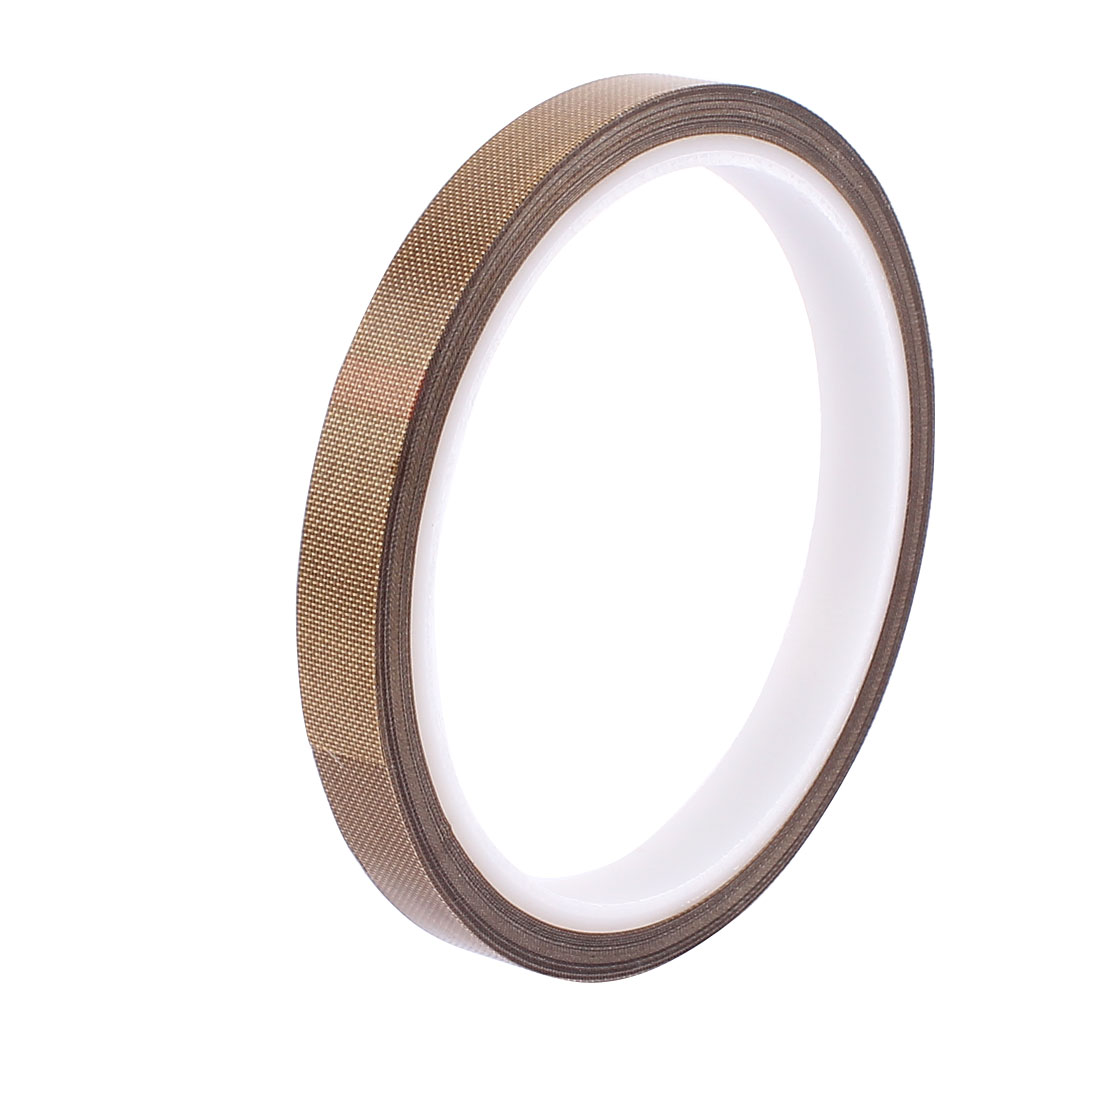 10mm Width 10M Long Nonstick High Temperature PTFE Adhesive Tape